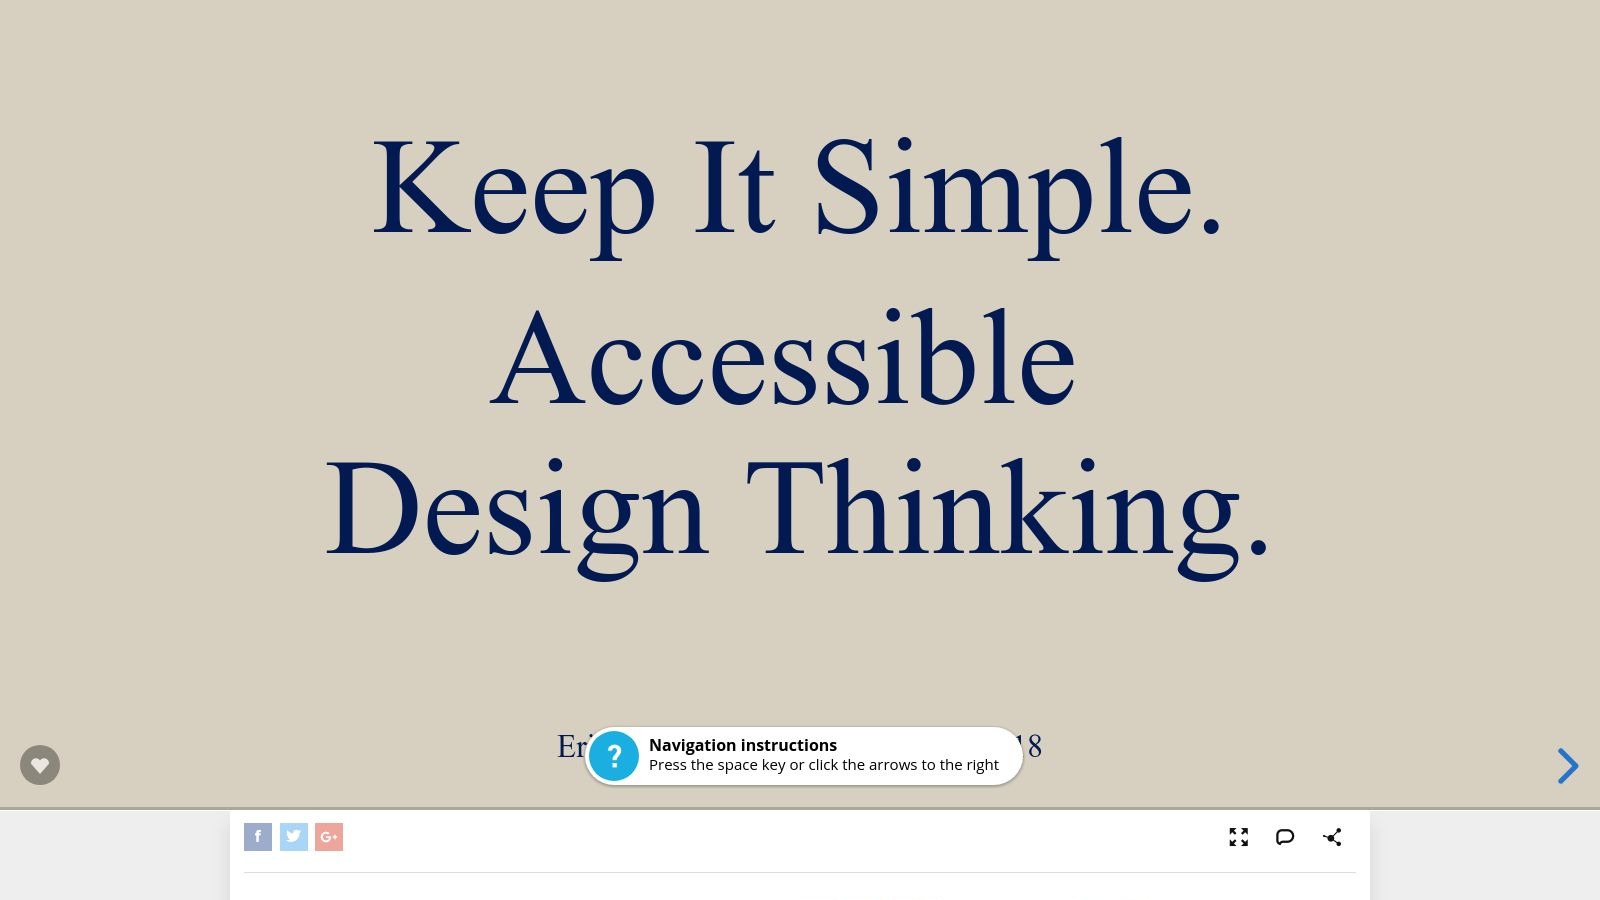 Keep it Simple. Accessible Design Thinking